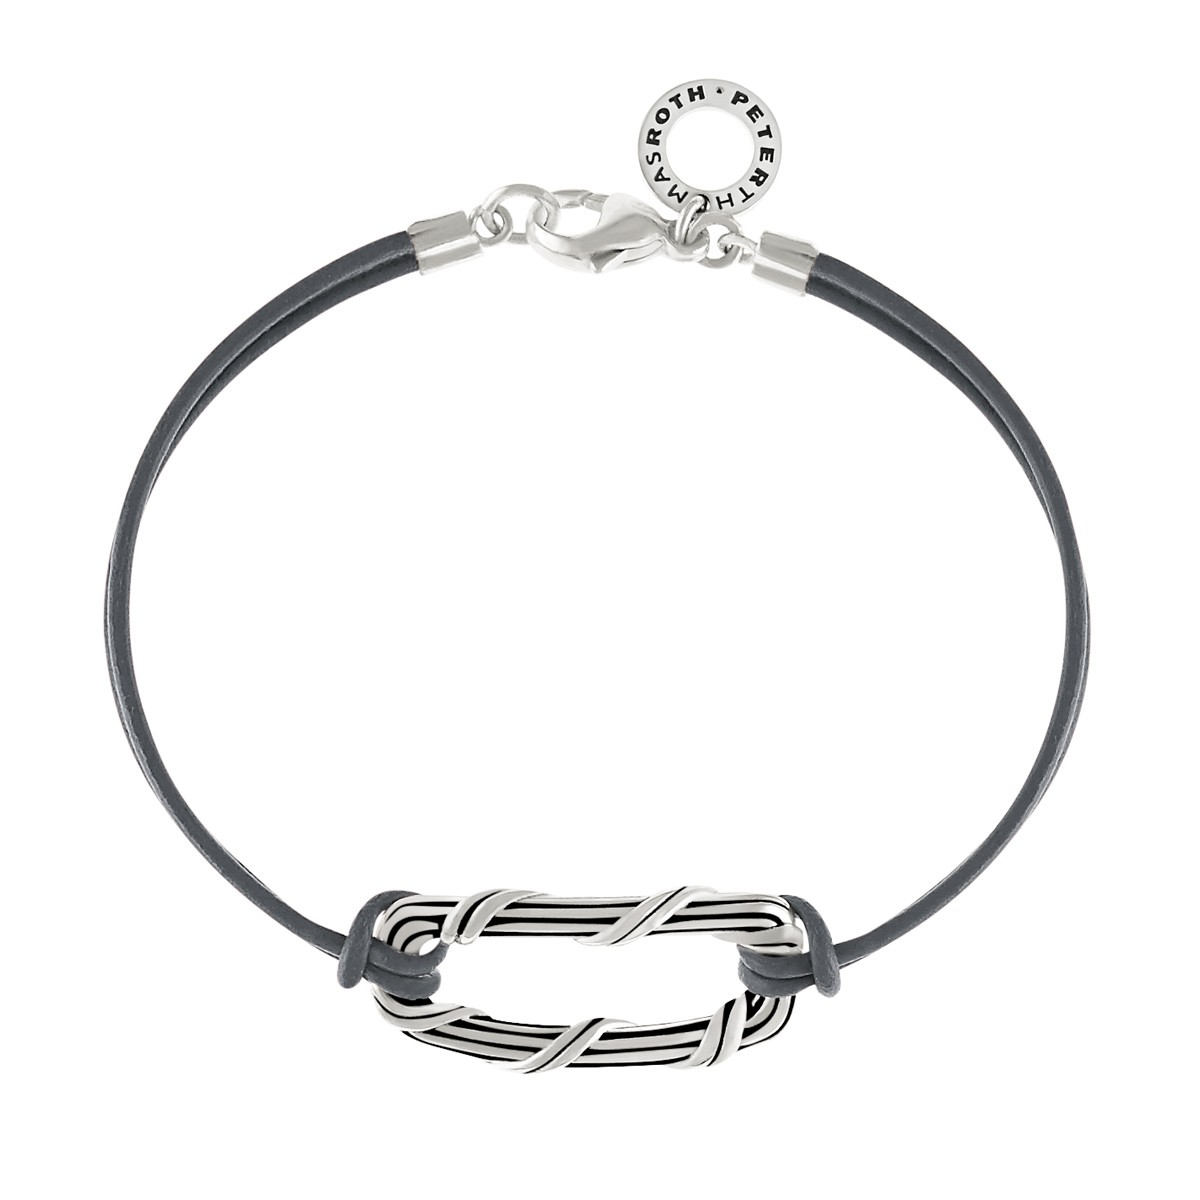 Rectangle Link Bracelet in sterling silver and slate gray leather